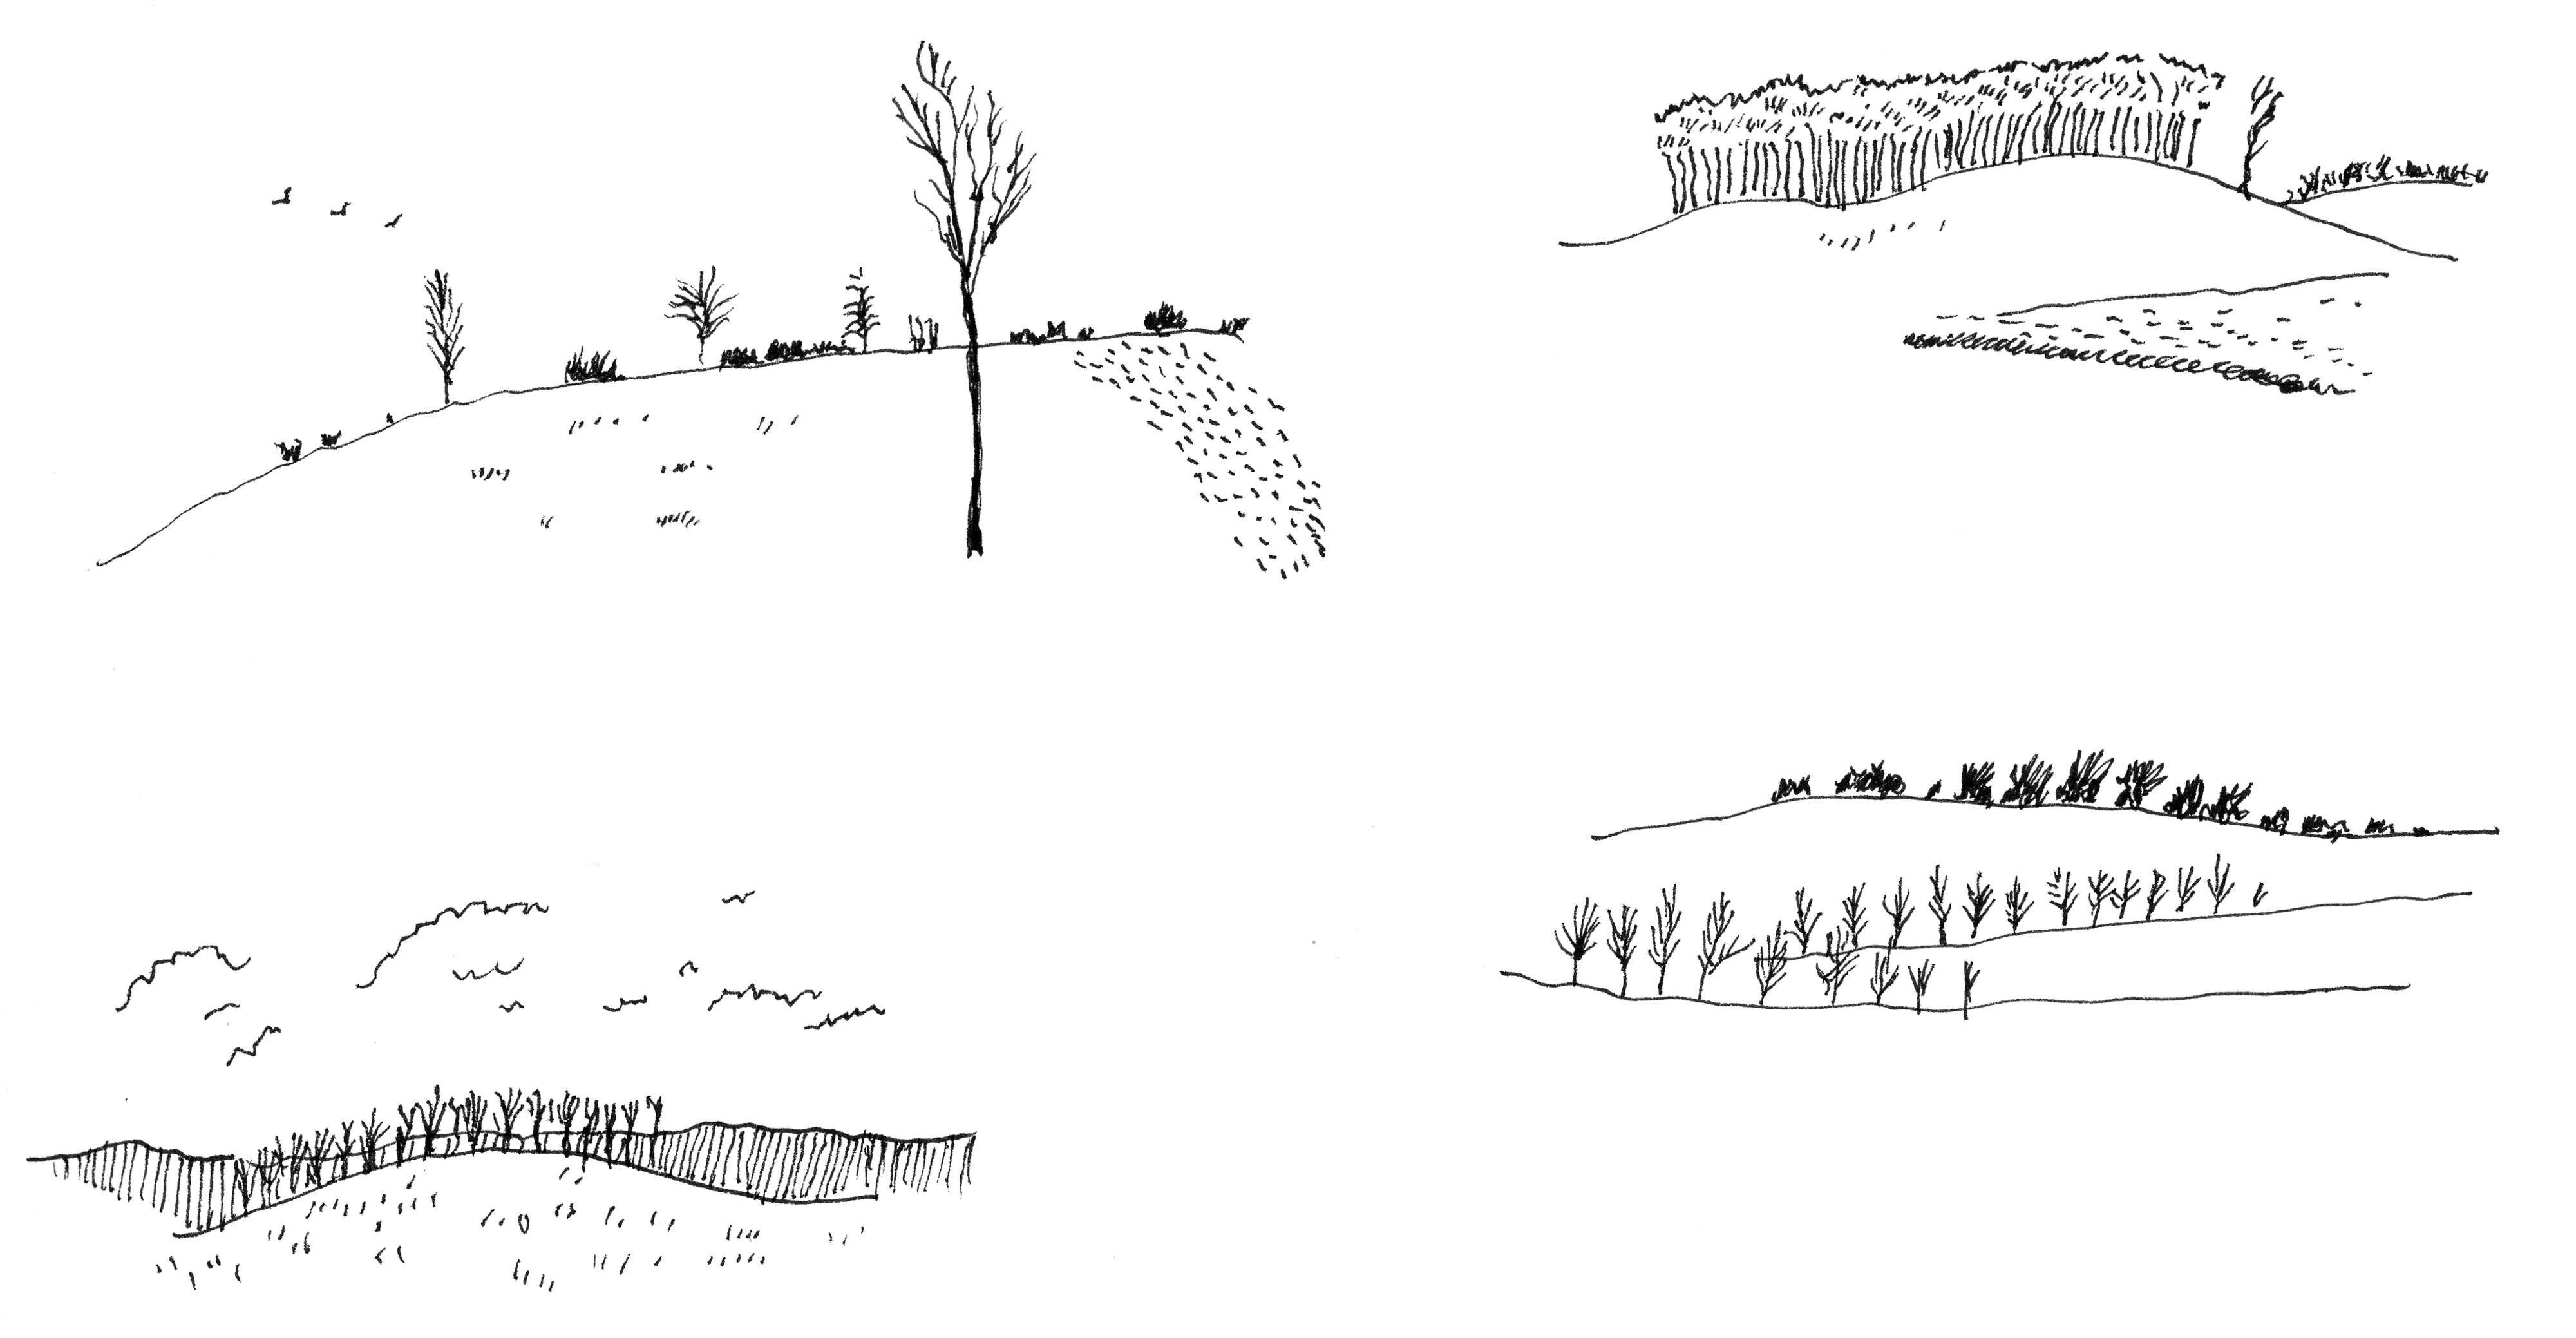 A series of sketches of the English countryside